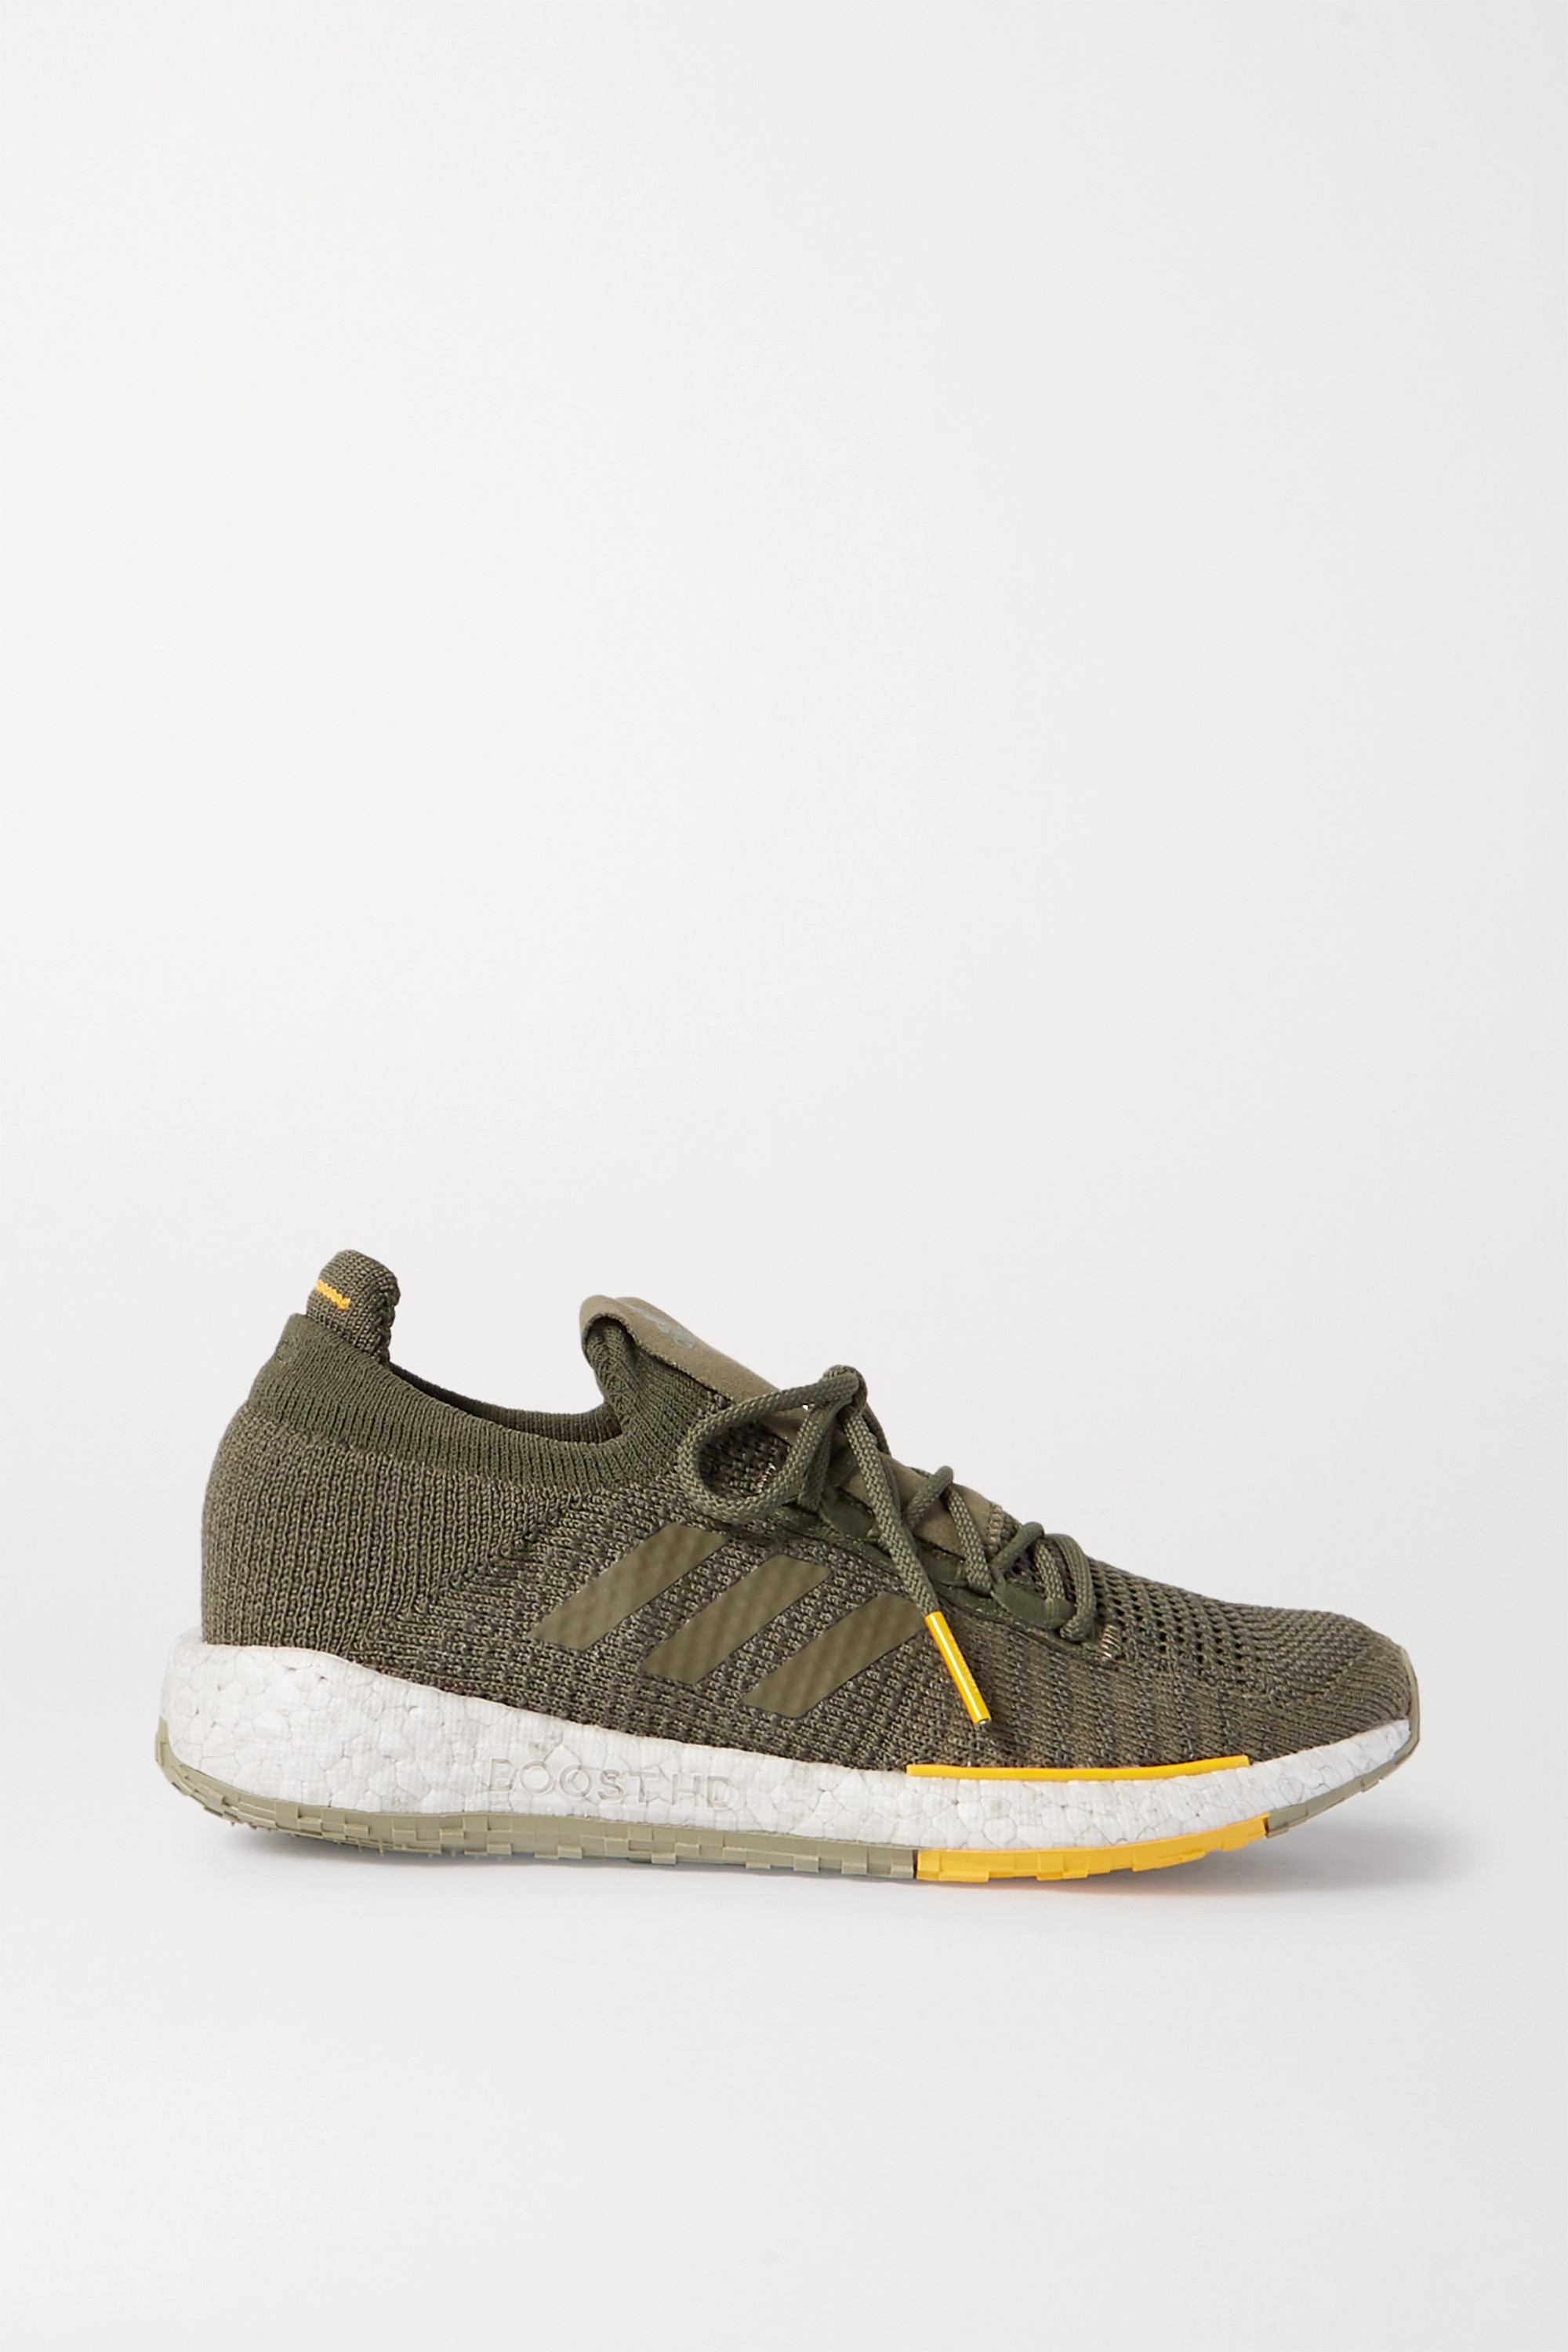 adidas Originals + Monocle Pulseboost HD stretch-knit sneakers